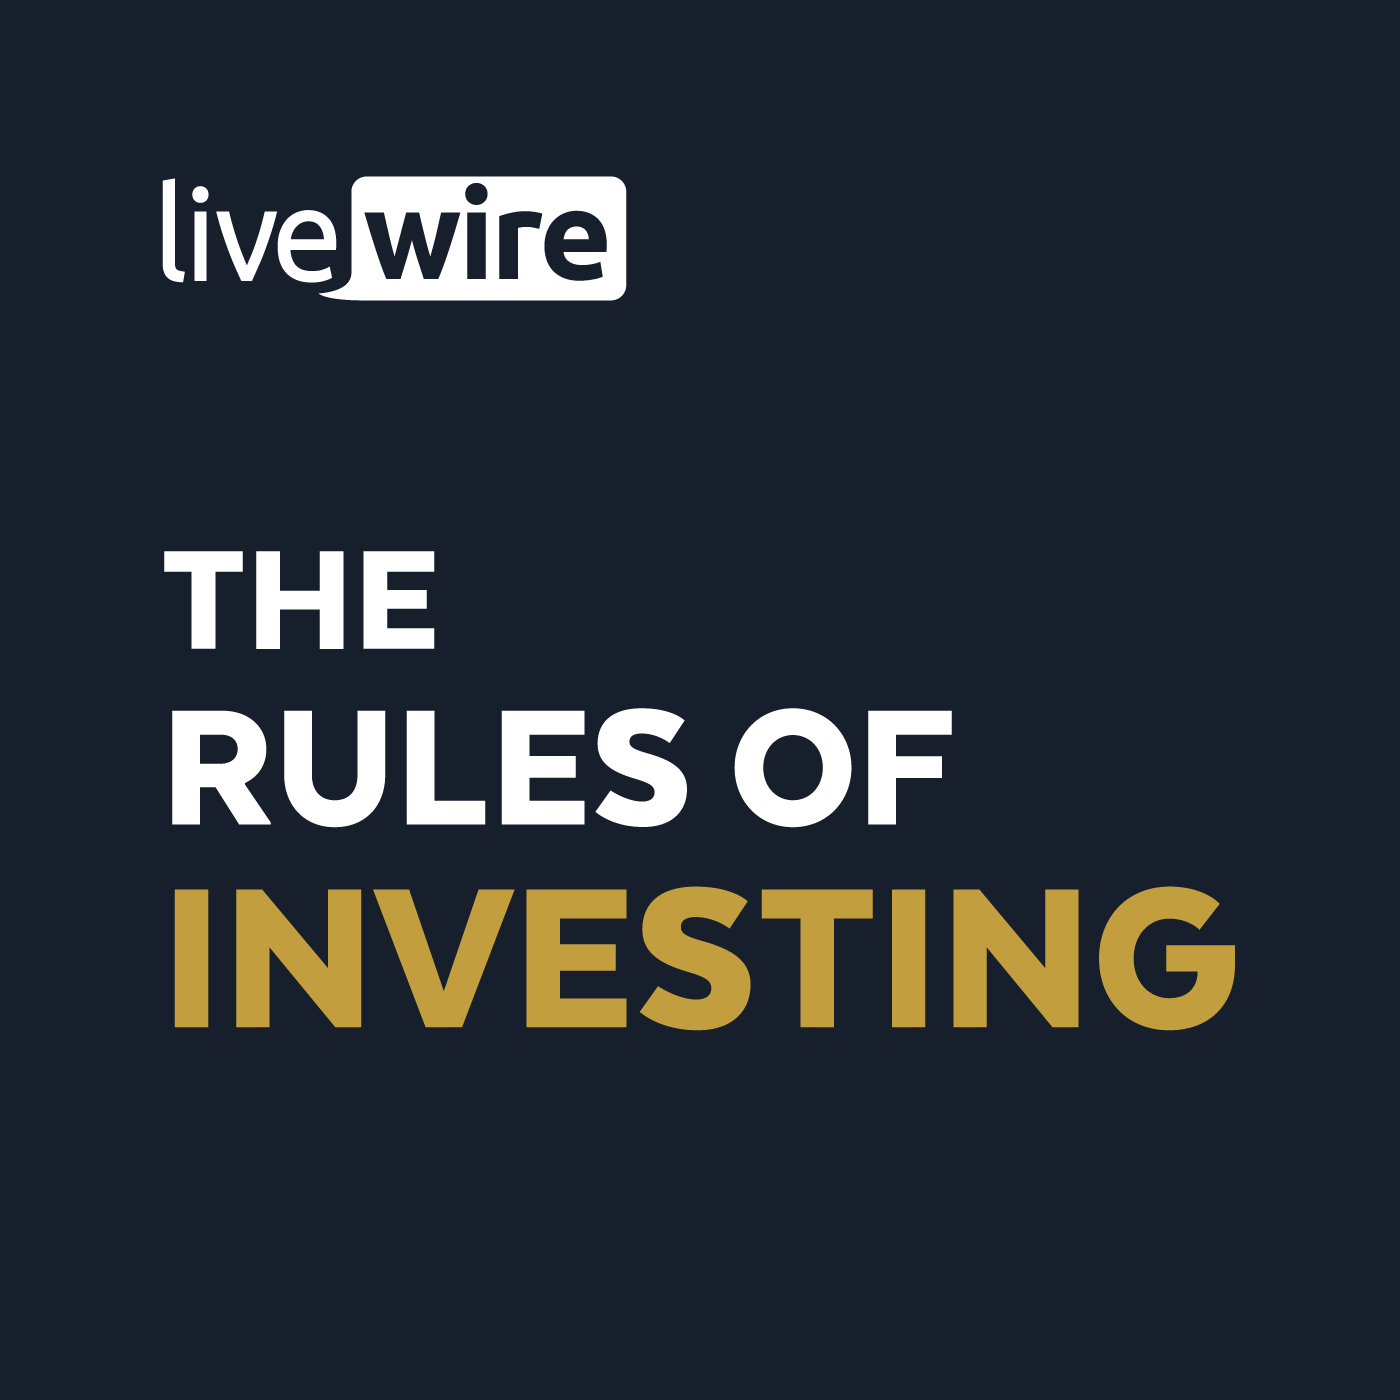 The Rules of Investing